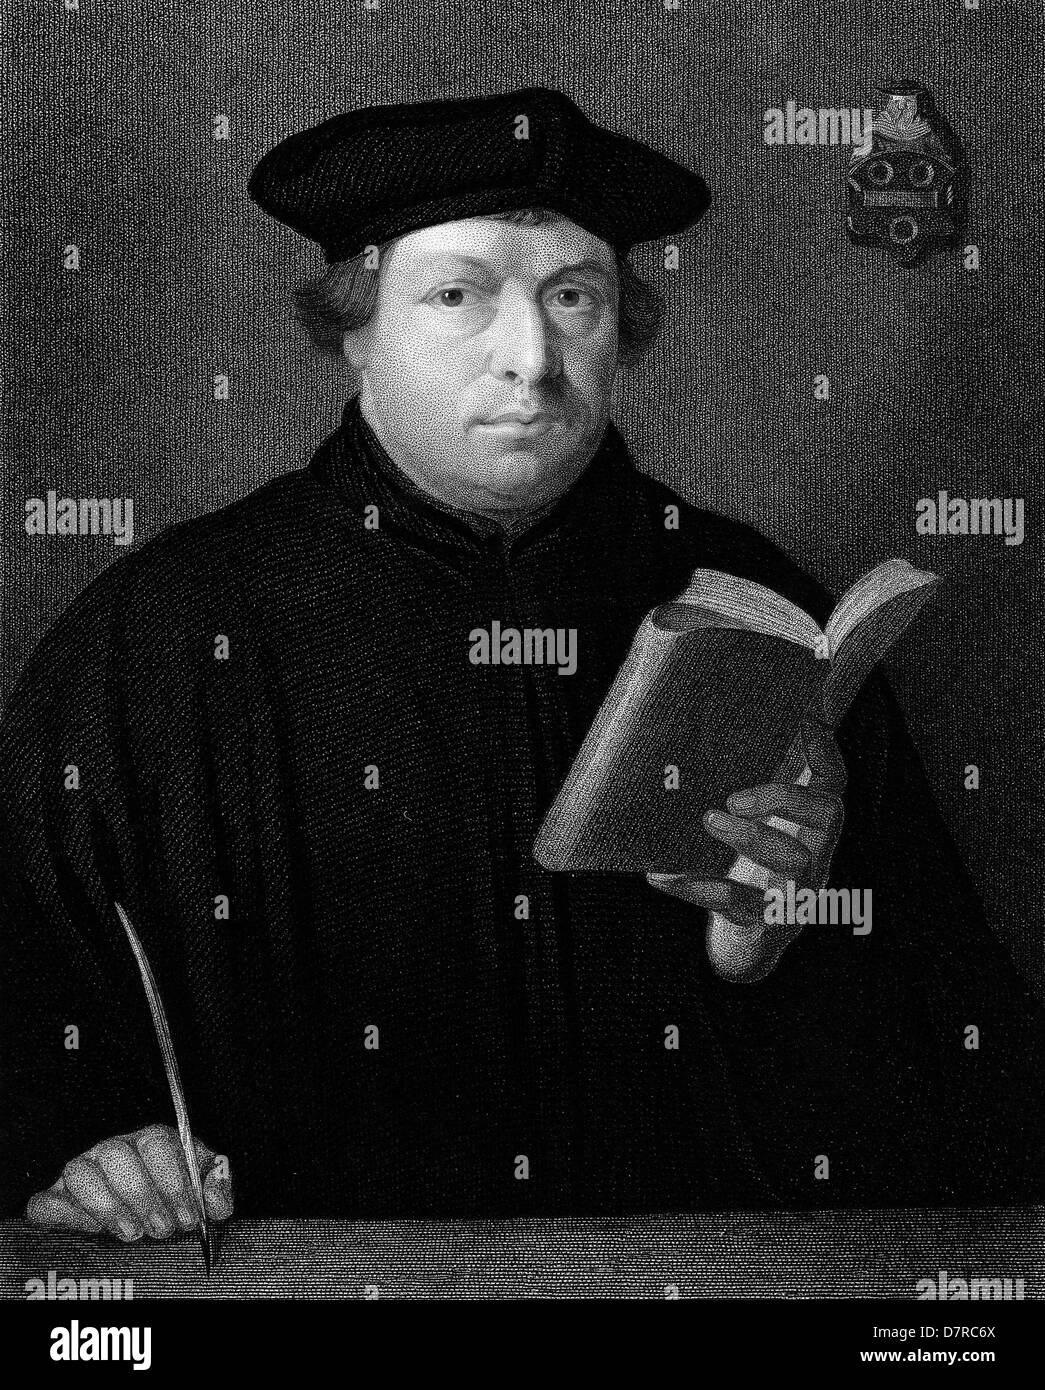 Martin Luther - German Protestant reformer 1830 Engraving - Stock Image